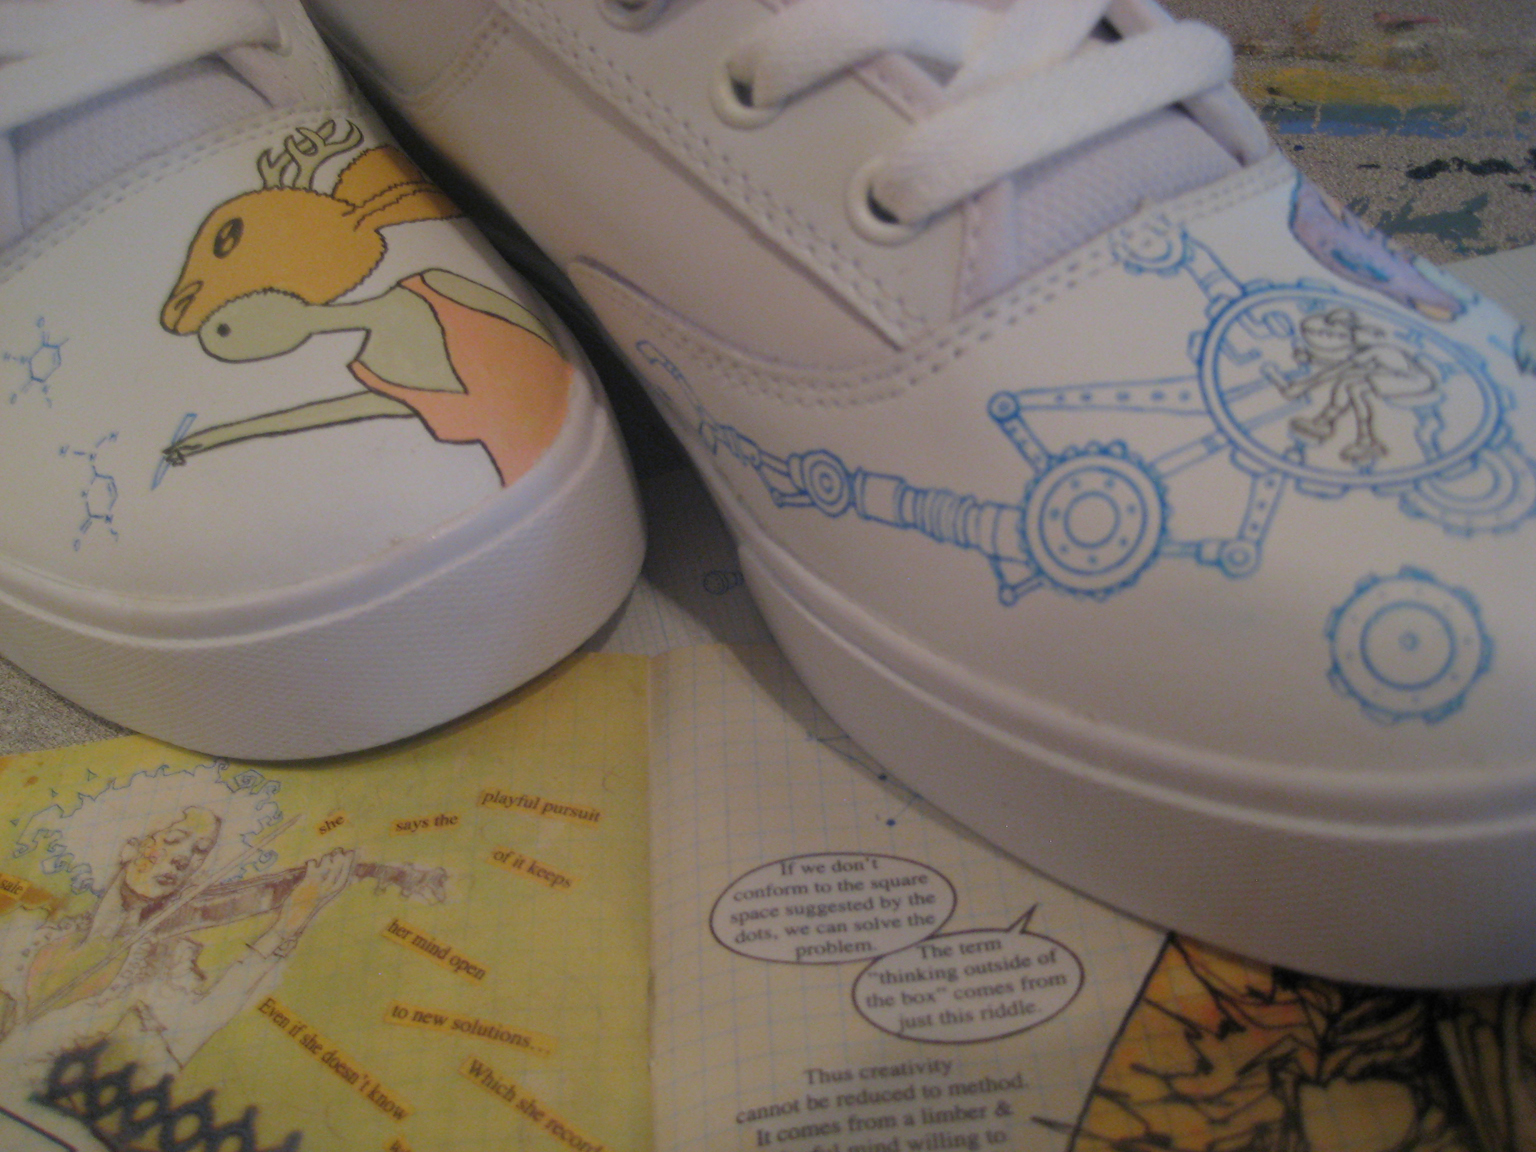 Thanks To David Mack For Sharing The Following Highresolution Photos Of  His Customized Etnies, Which Will Be Auctioned Off By Theic Book Legal  Defense